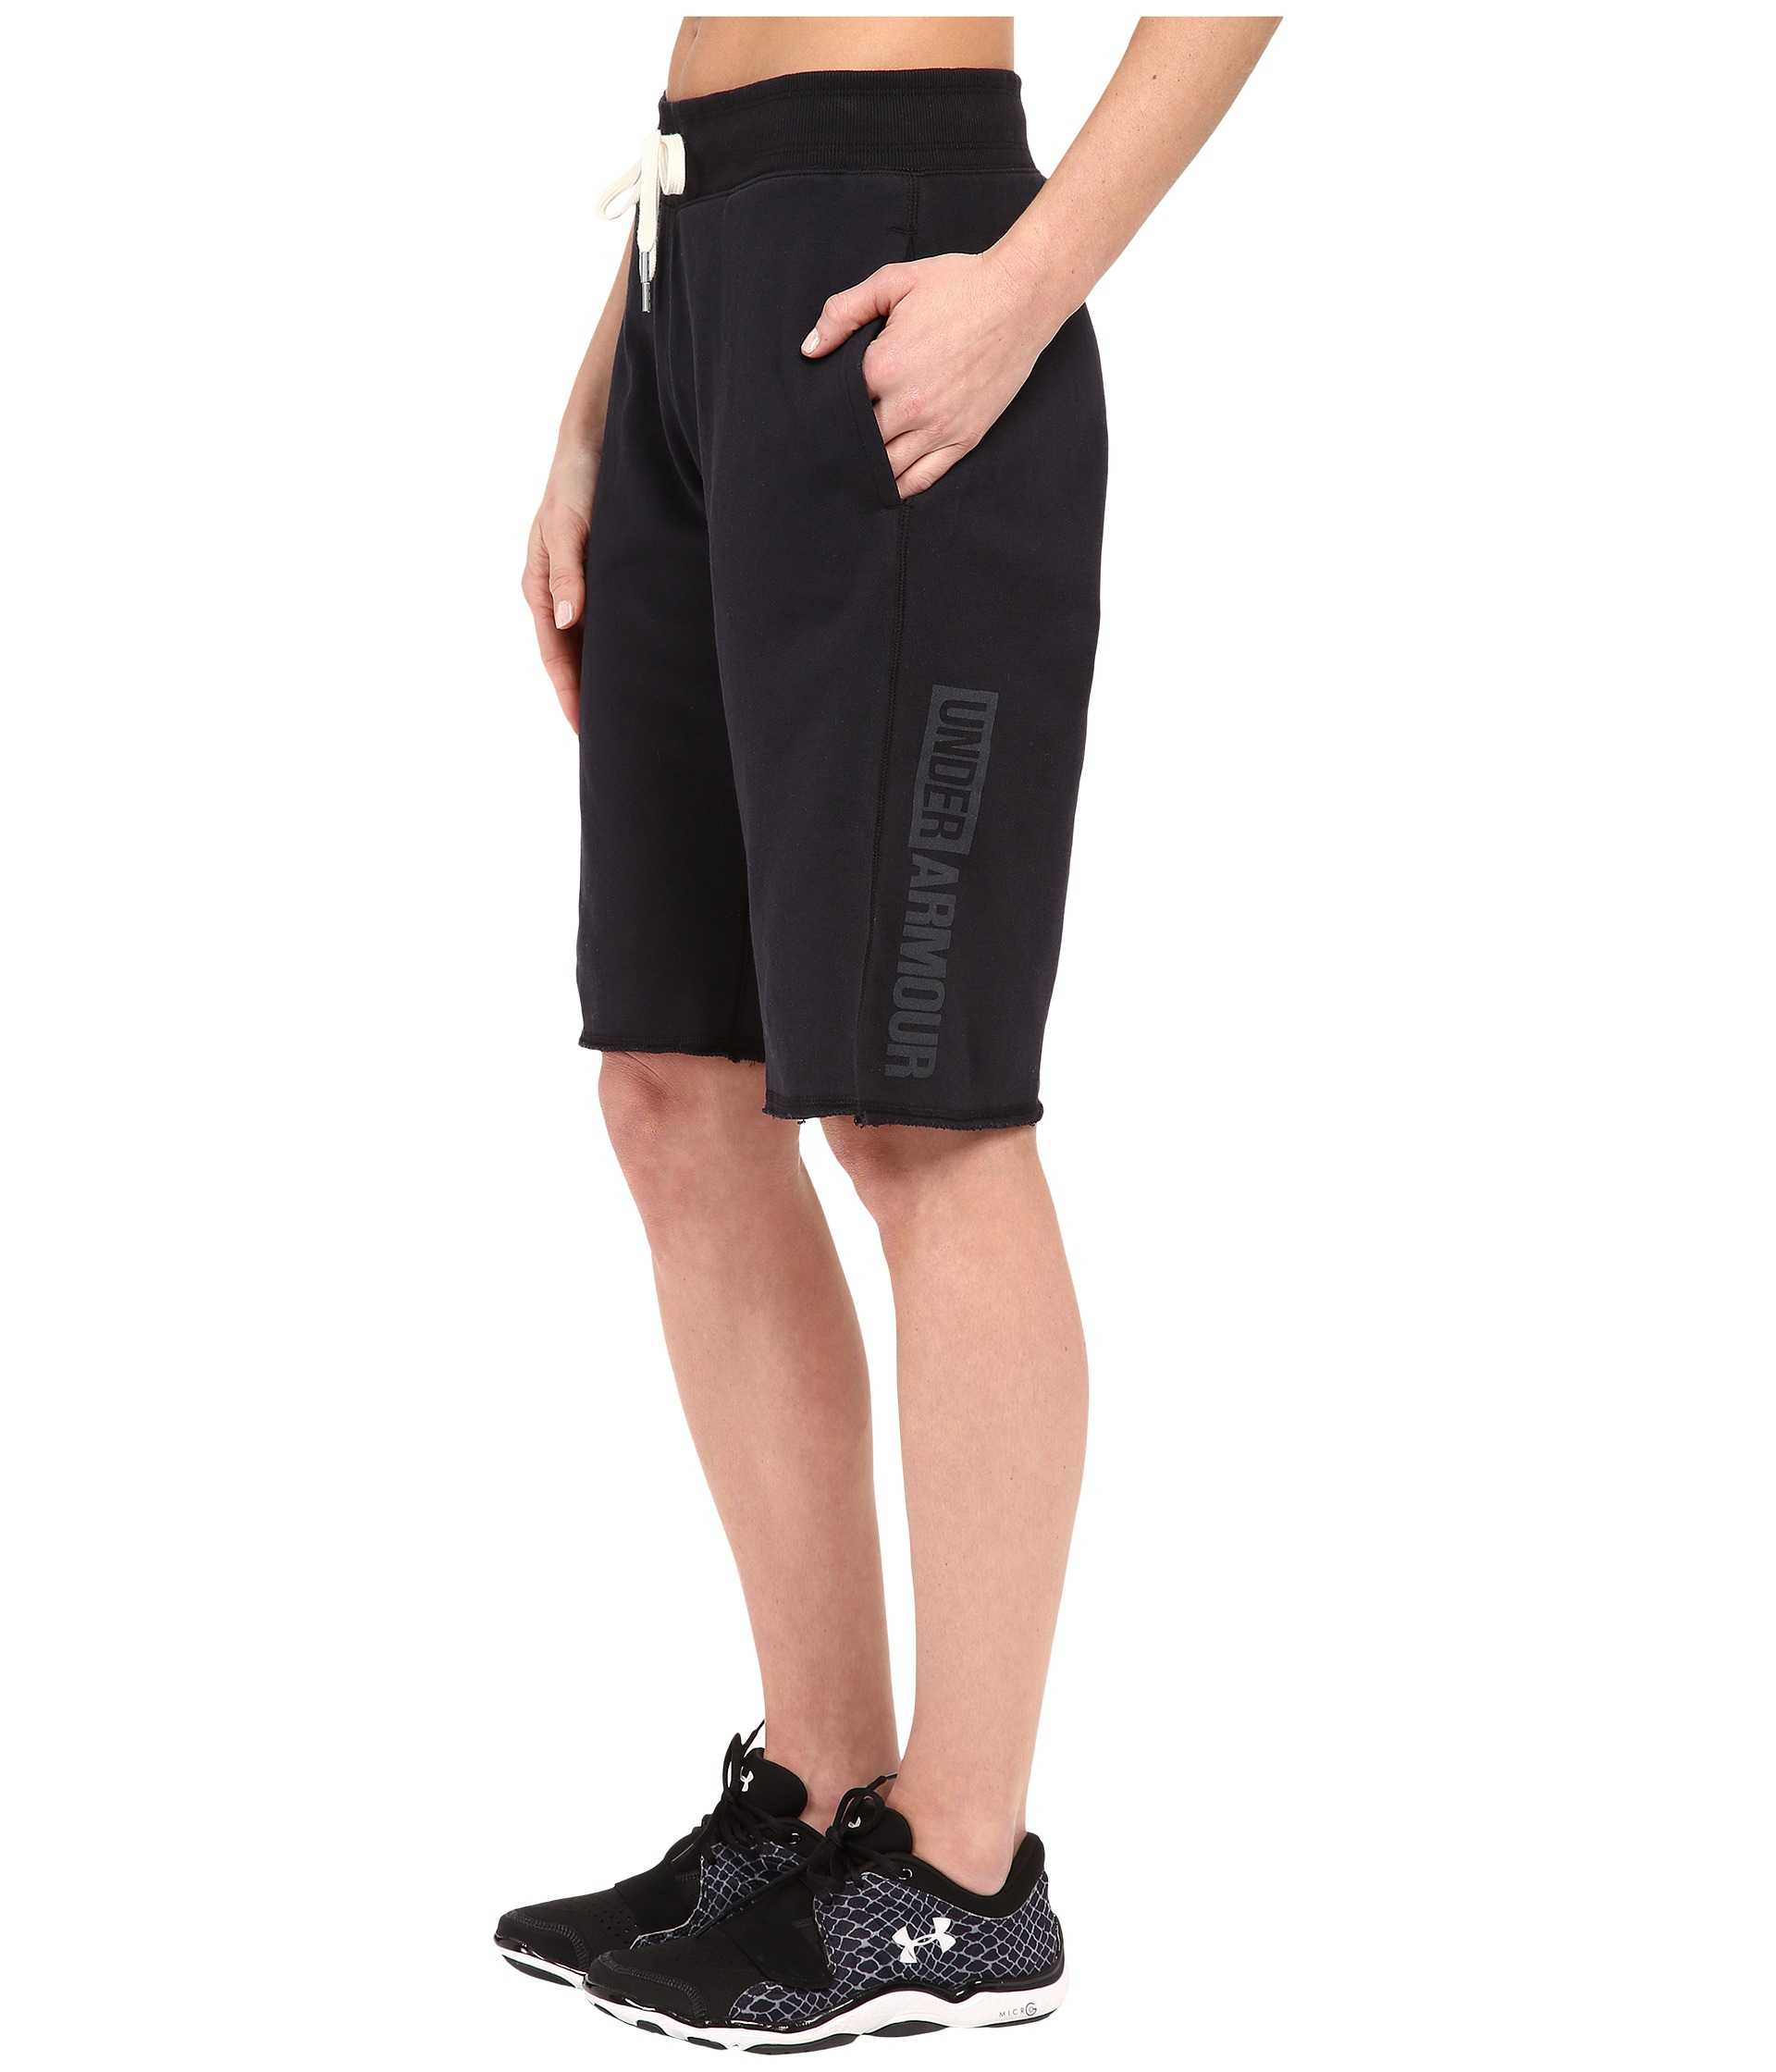 Lyst - Under Armour Favorite French Terry Boyshorts in Black for Men cf9342496b6a